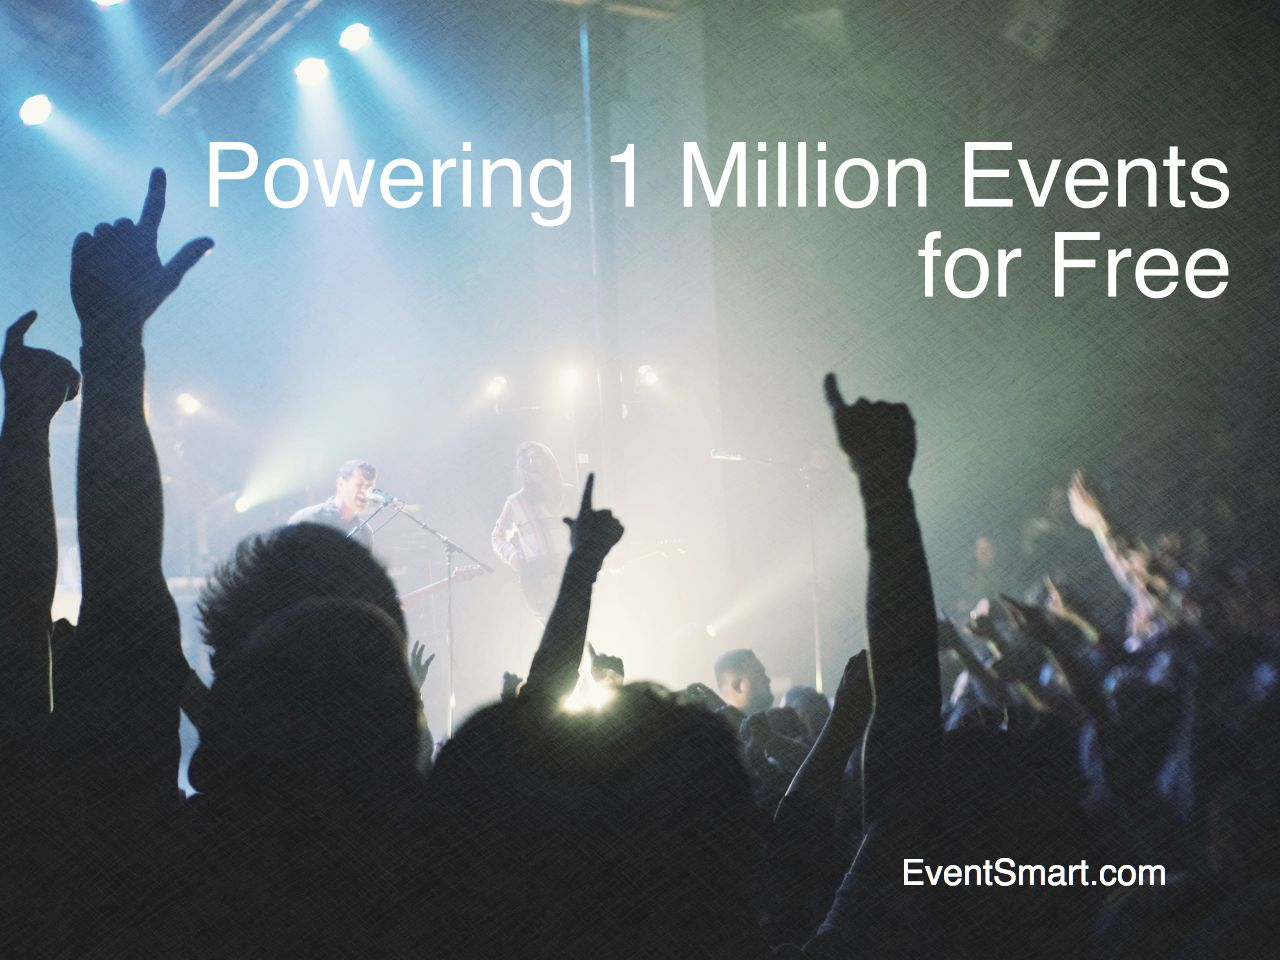 Free online event registration ticketing for 1 million events